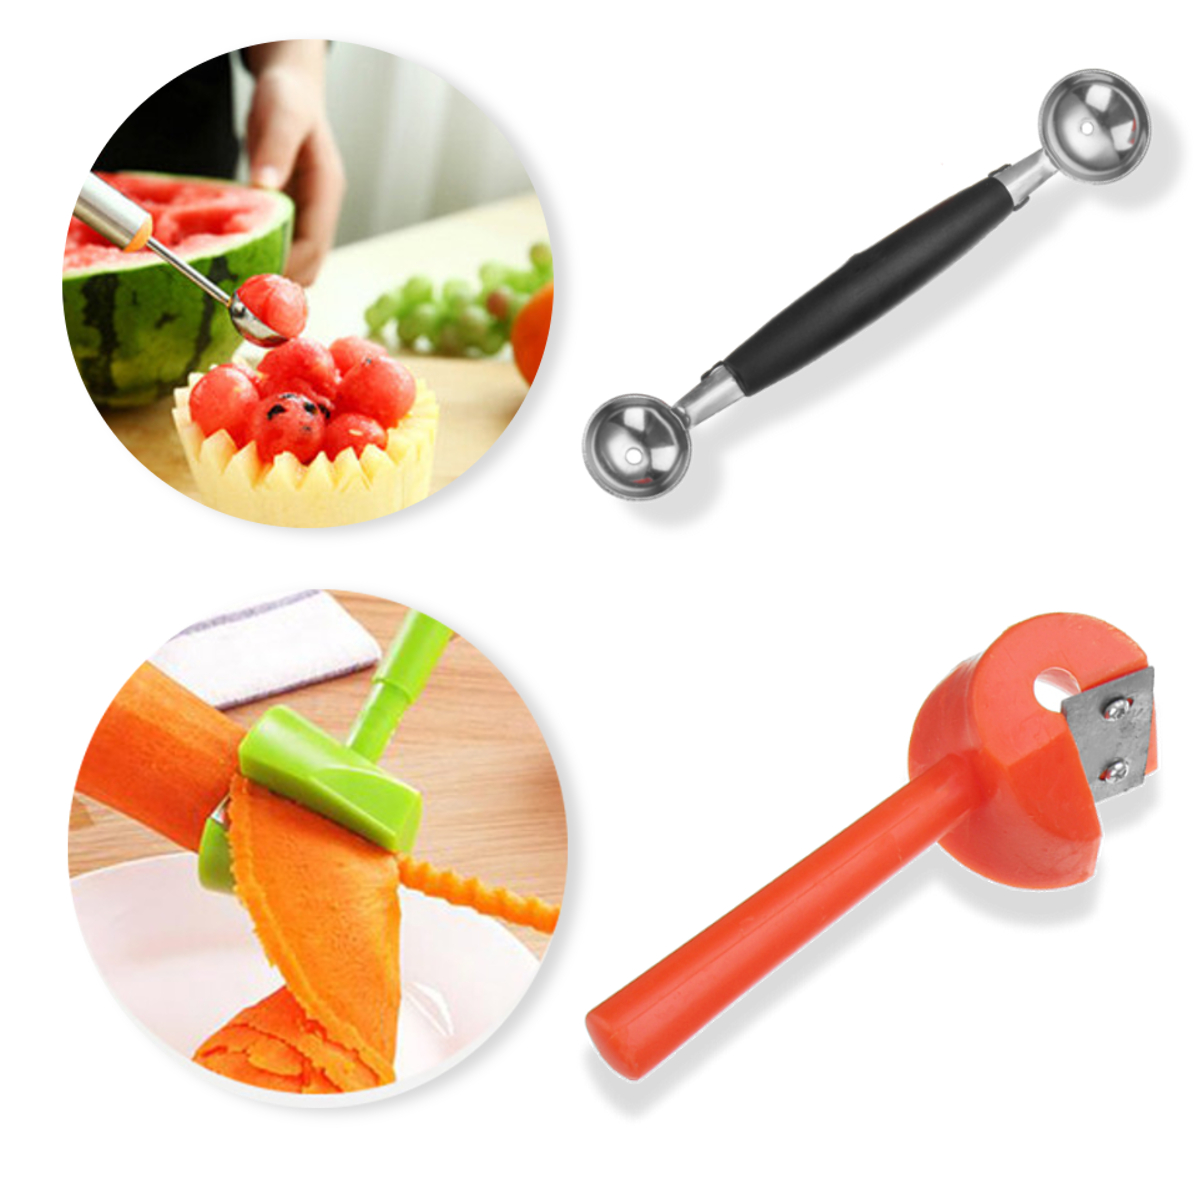 80Pcs Portable Carving Tool Vegetable Food Fruit Wood Box Carving Cutter Set